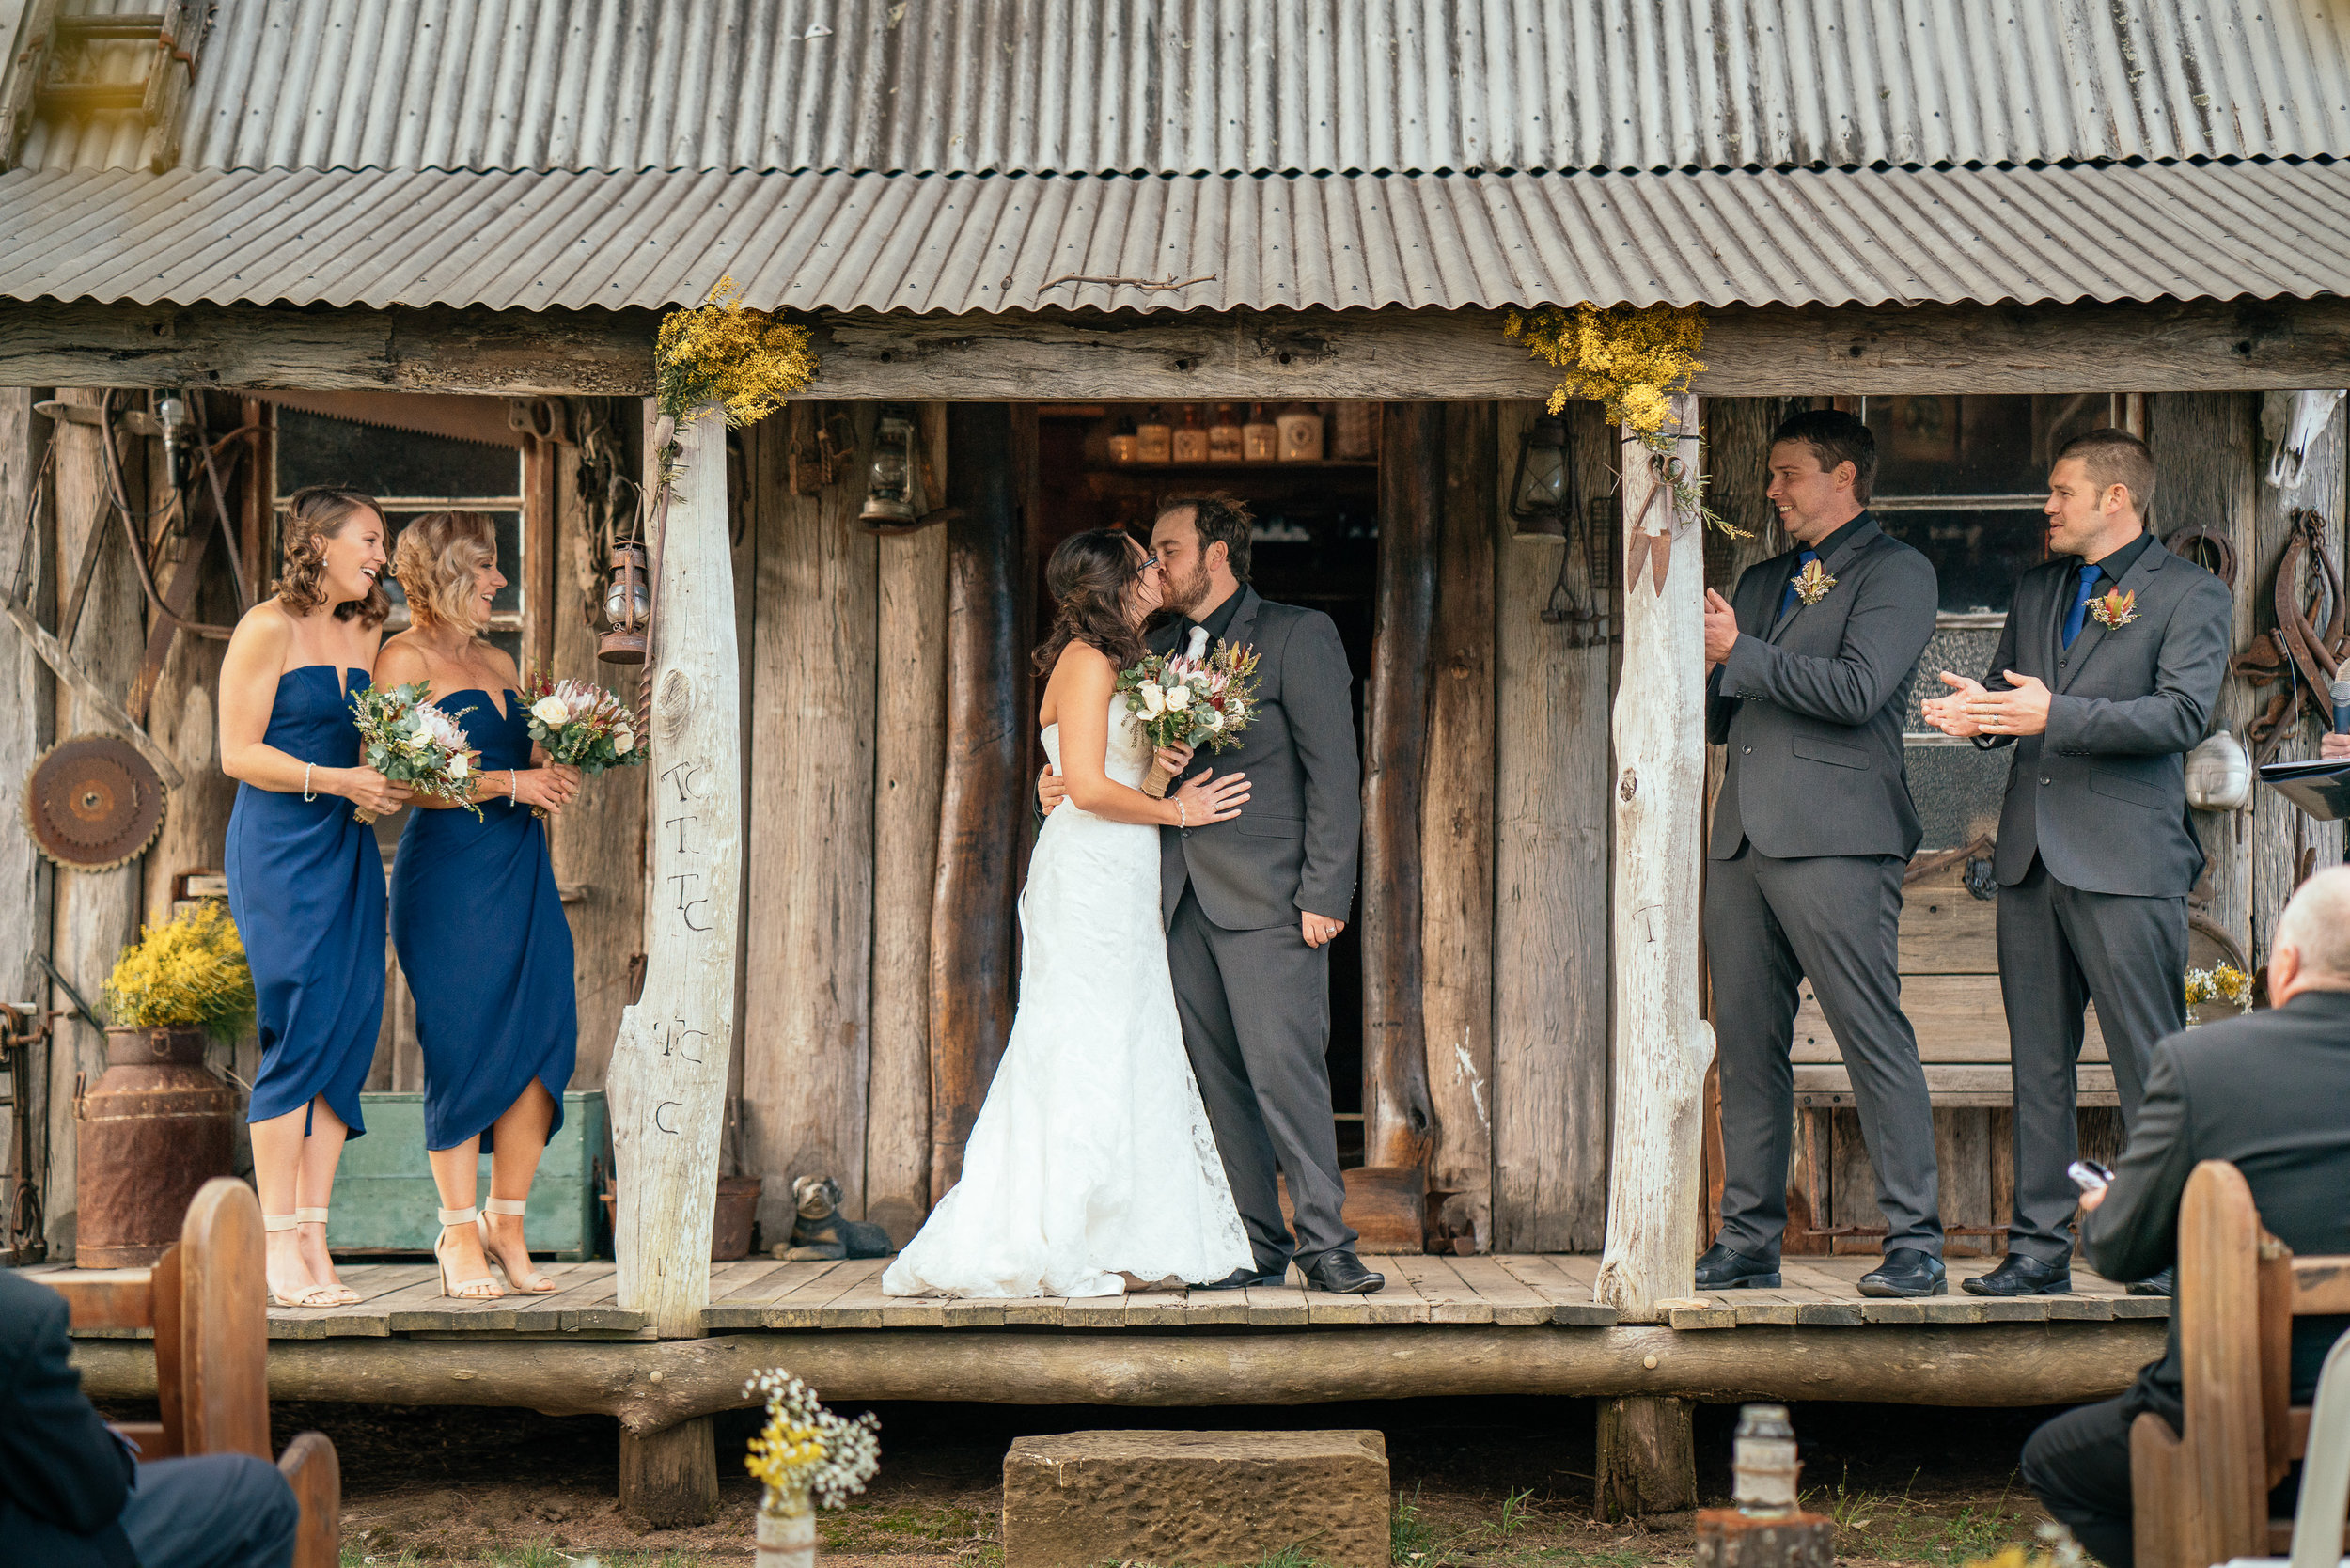 Erin & John - Thank you so much Ludo for capturing our special day! We have gorgeous photos and thank you for making everyone feel comfortable to get their picture taken! Cannot thank you enough for all your hard work! Xx